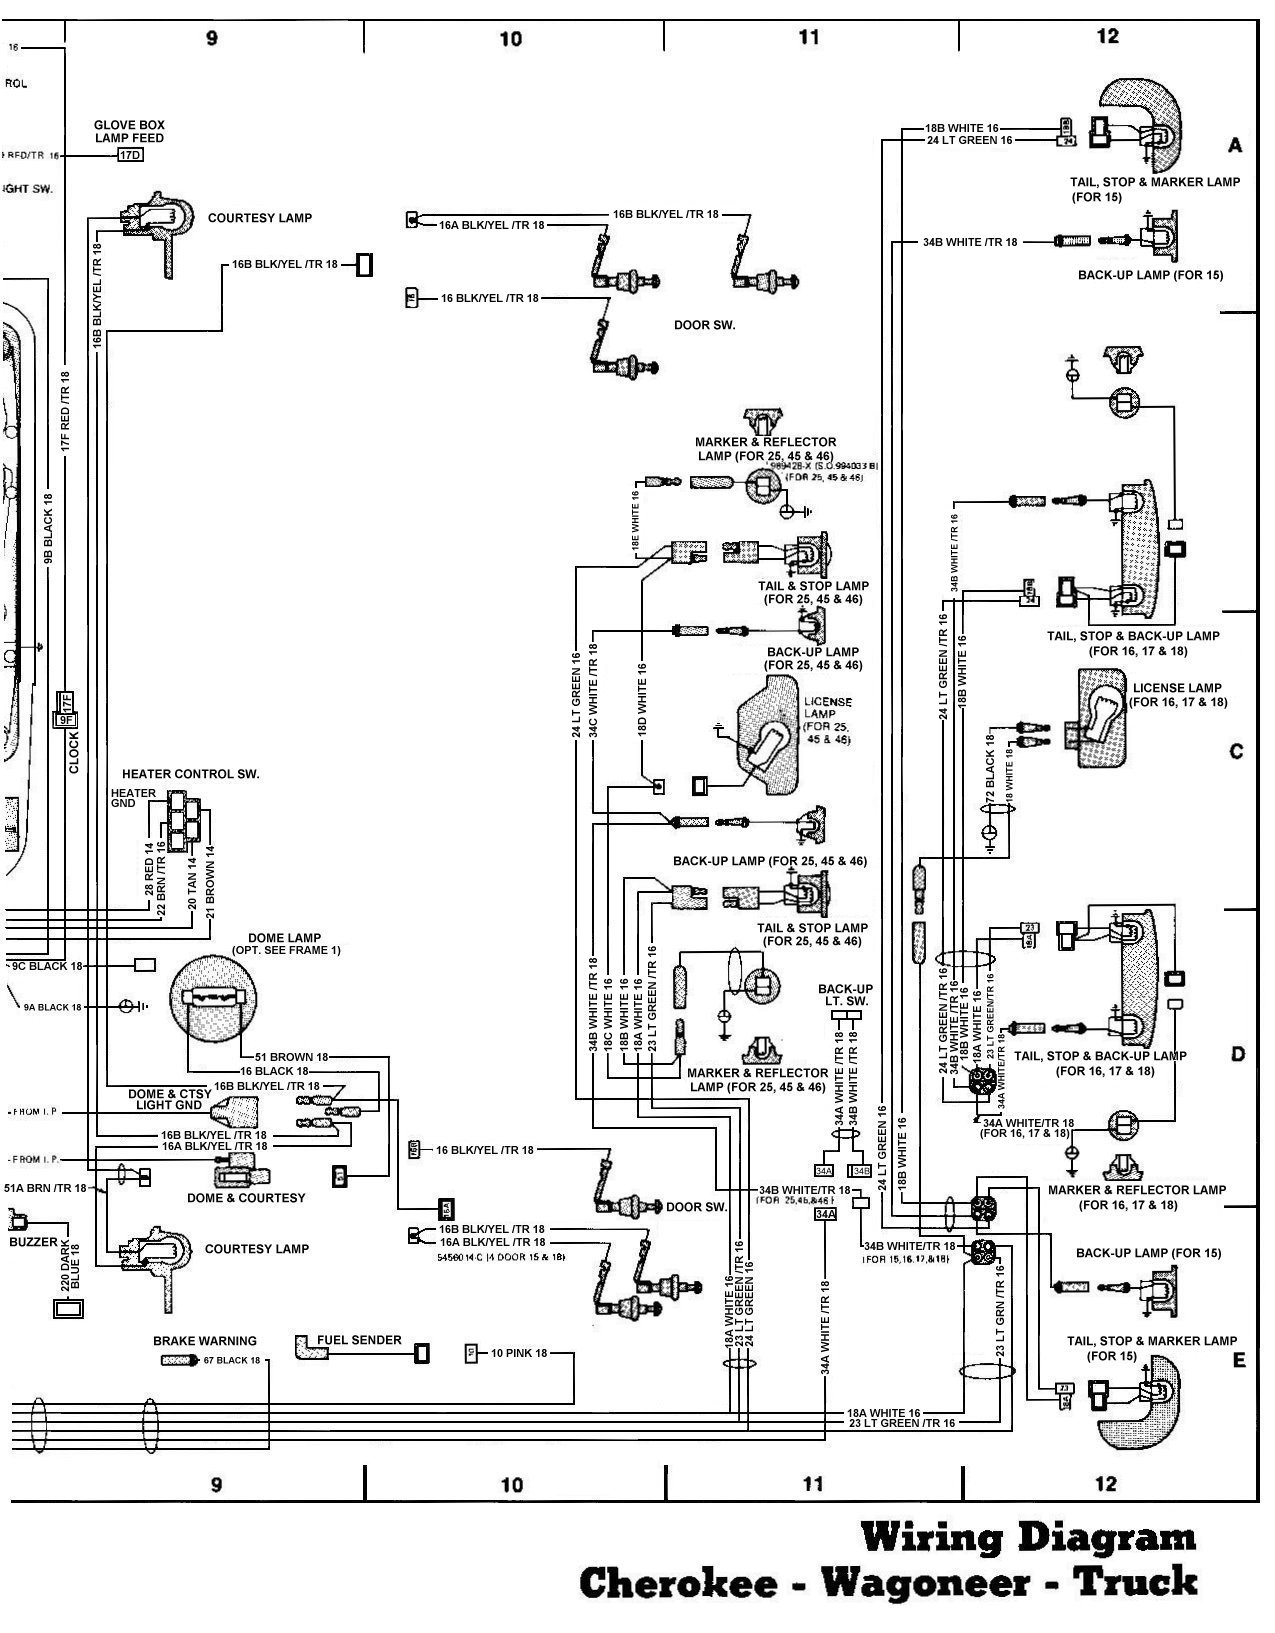 1979 Corvette Radio Wiring Diagram : 34 Wiring Diagram